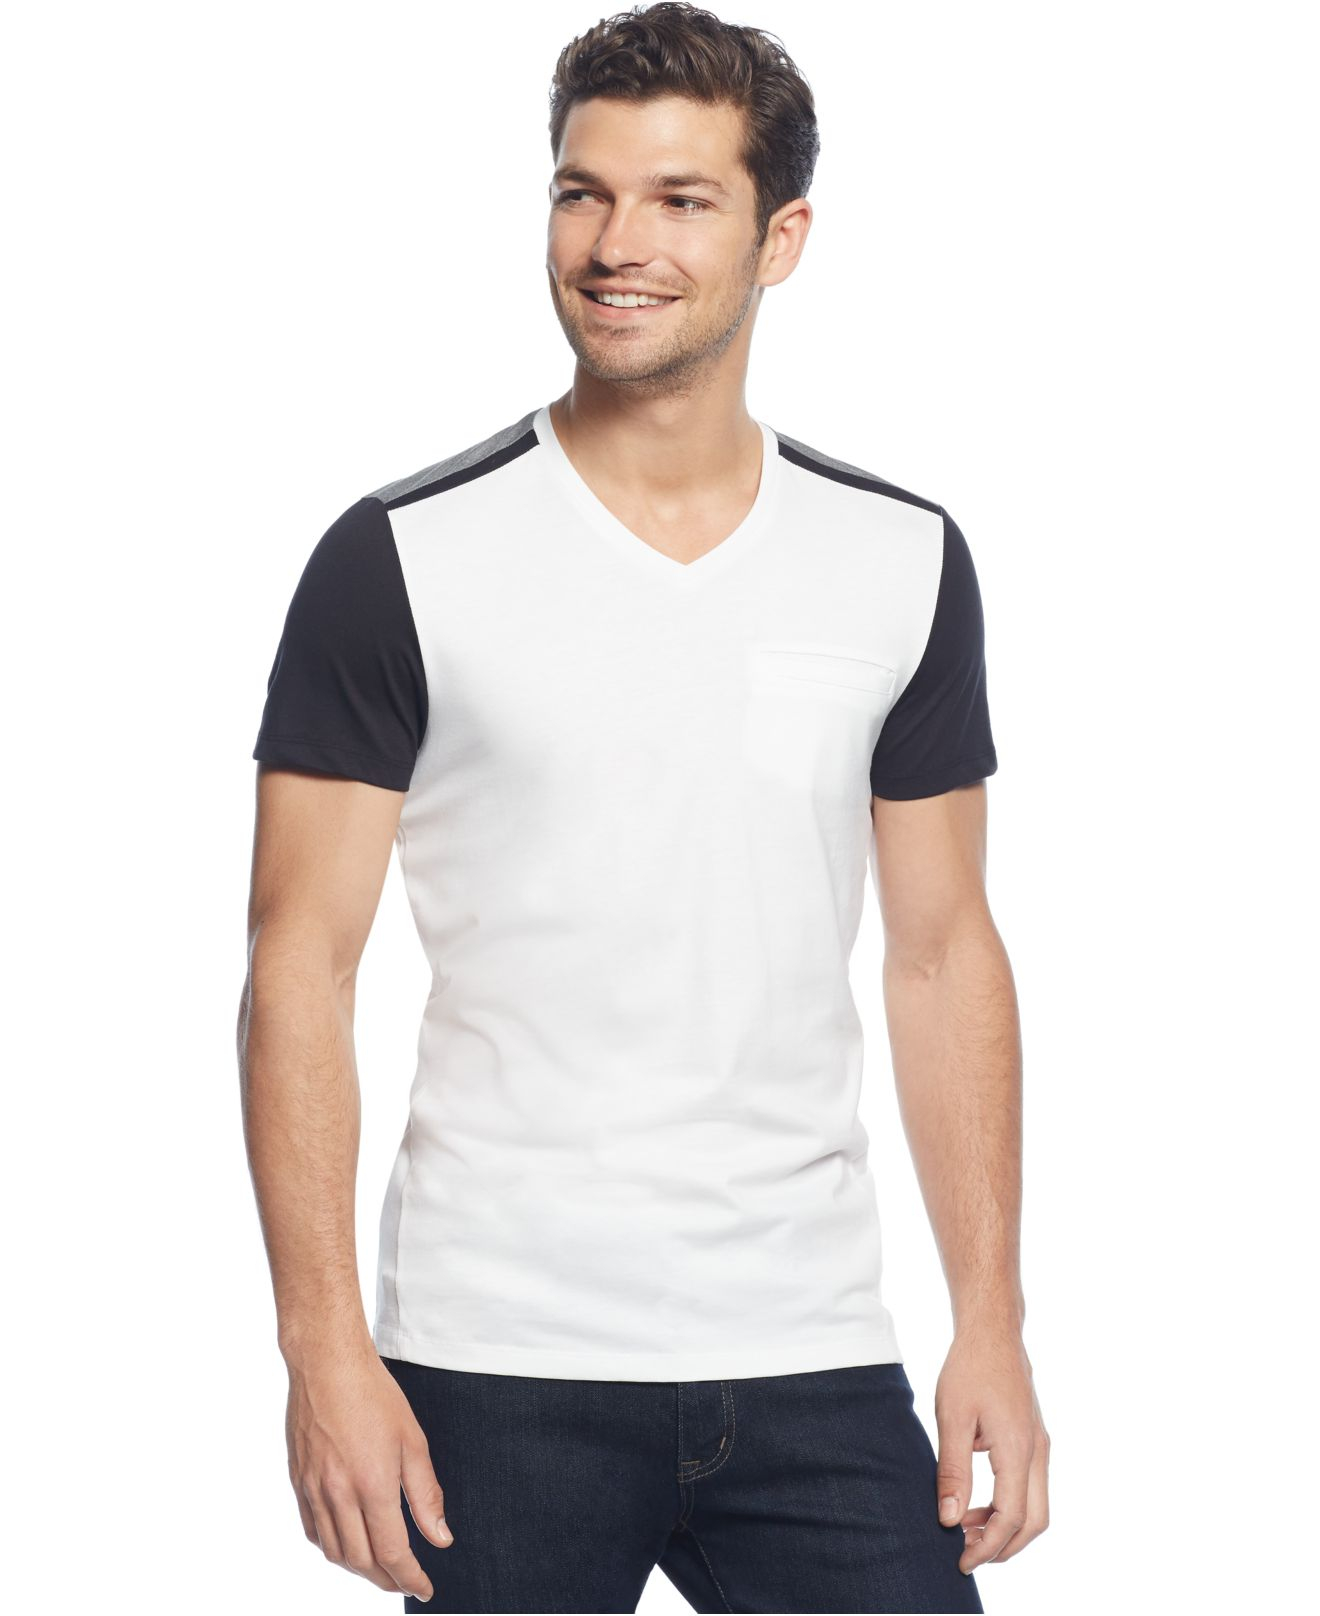 calvin klein colorblocked t shirt in white for men lyst. Black Bedroom Furniture Sets. Home Design Ideas